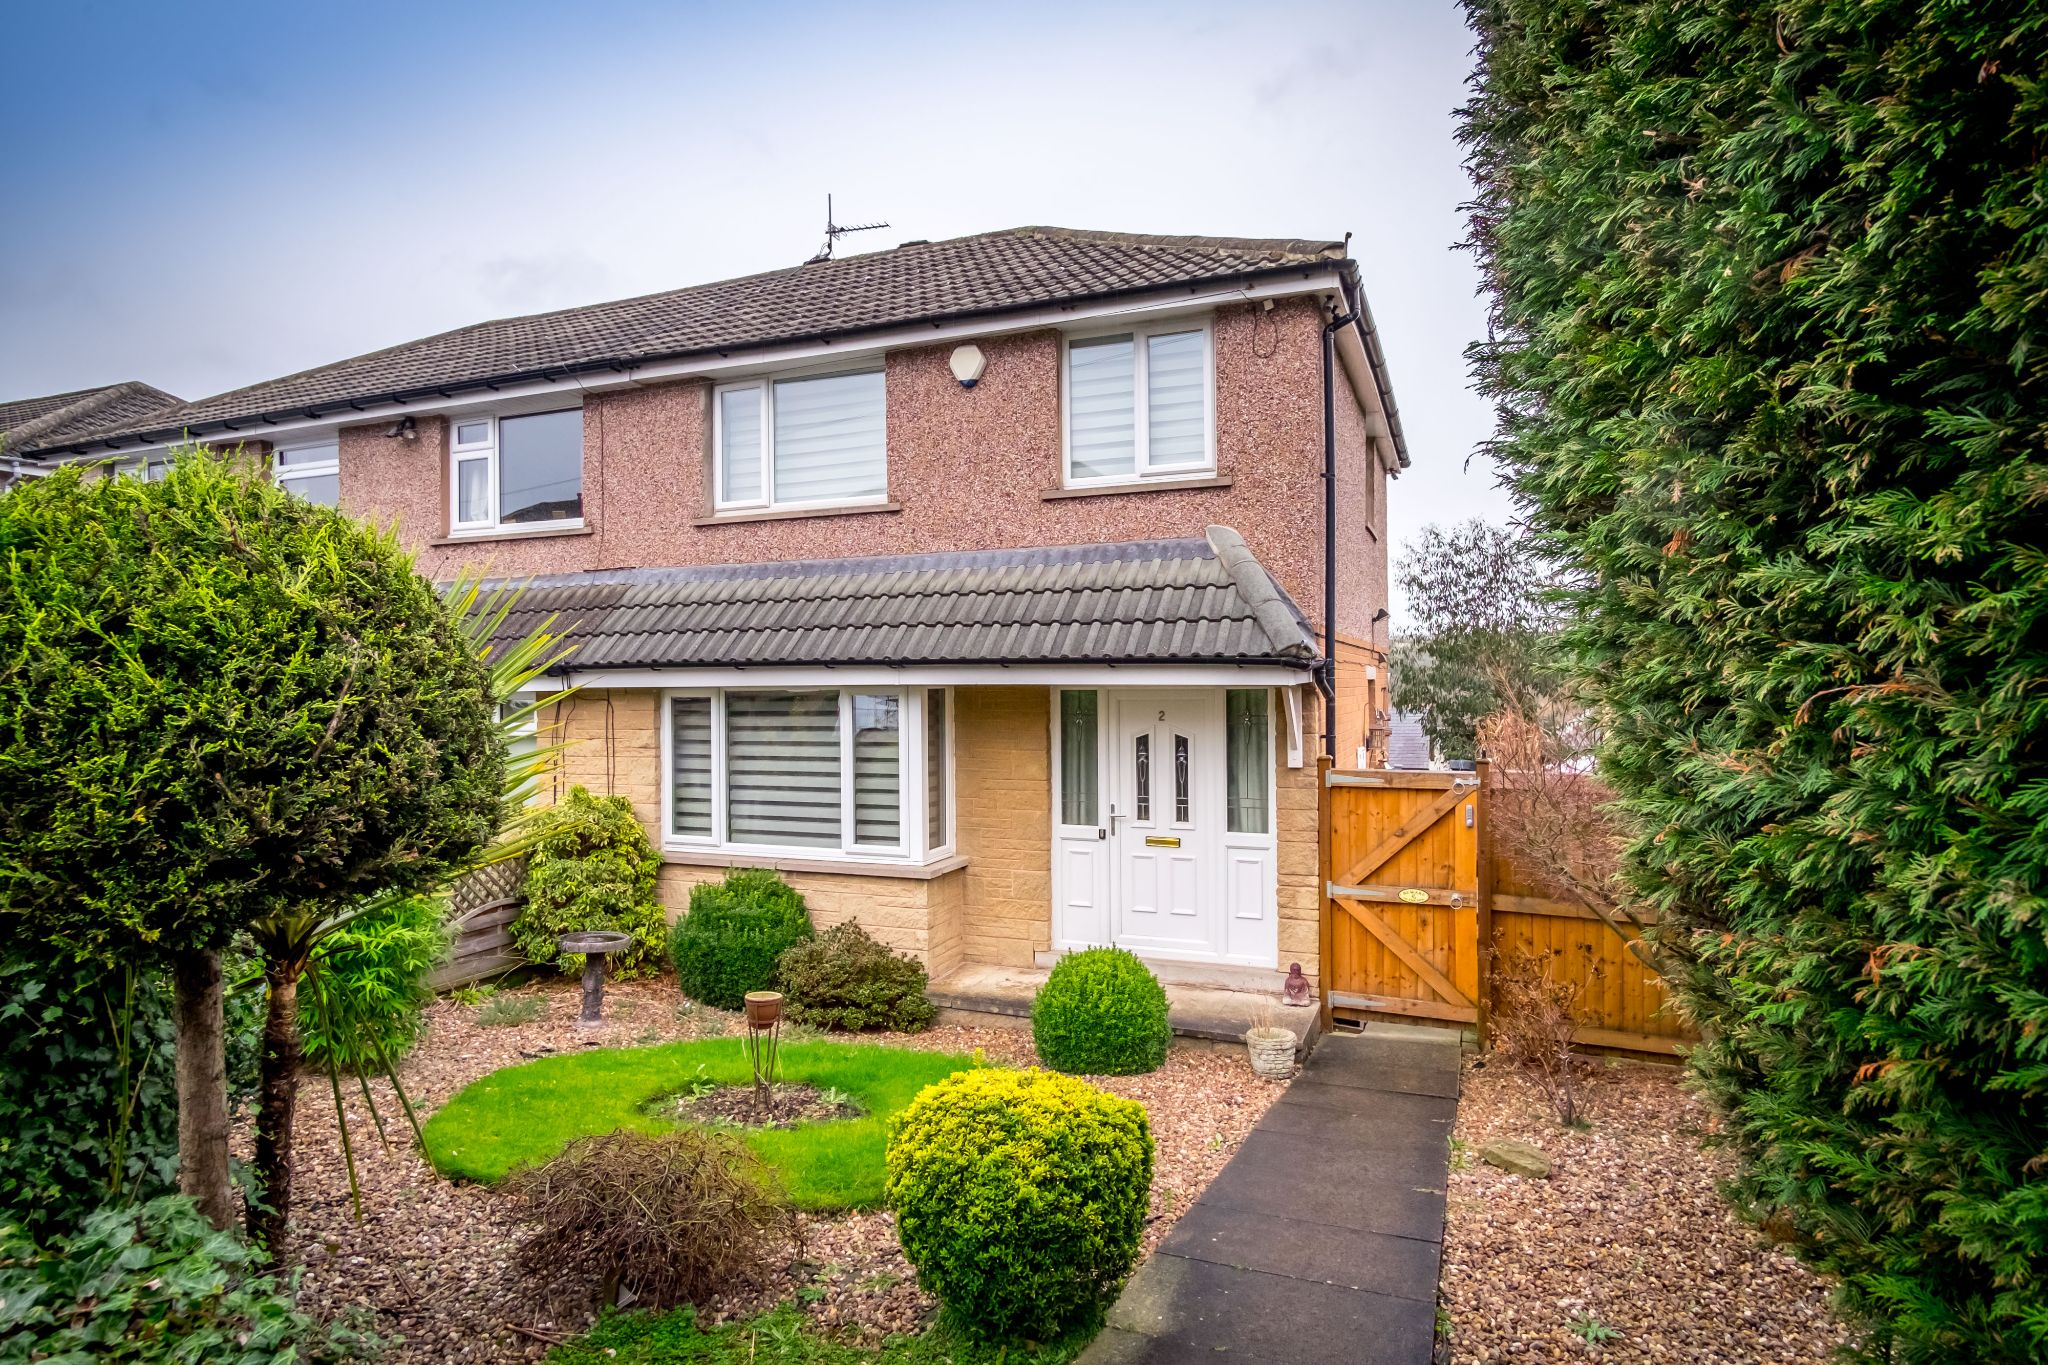 3 bedroom semi-detached house SSTC in Brighouse - Front elevation